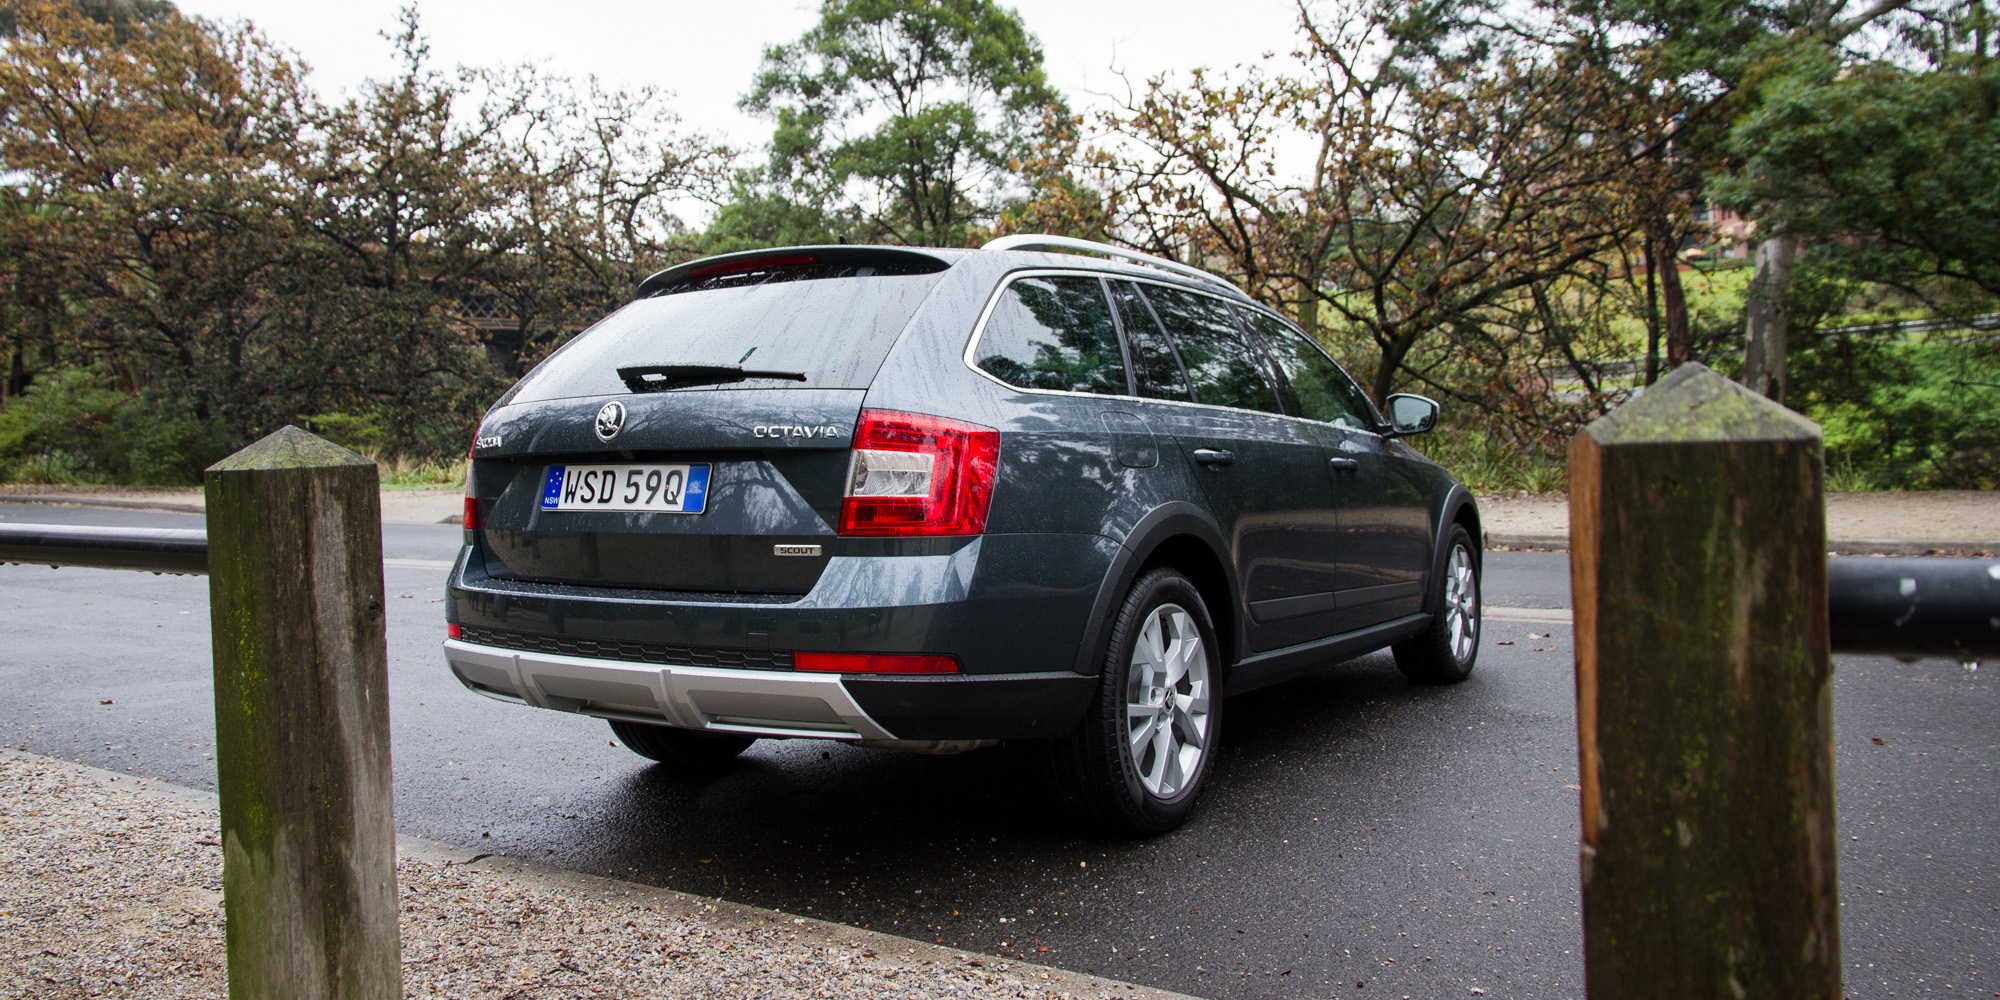 Hyundai Models 2015 >> 2016 Skoda Octavia Scout Review : 132 TSI Premium - photos ...